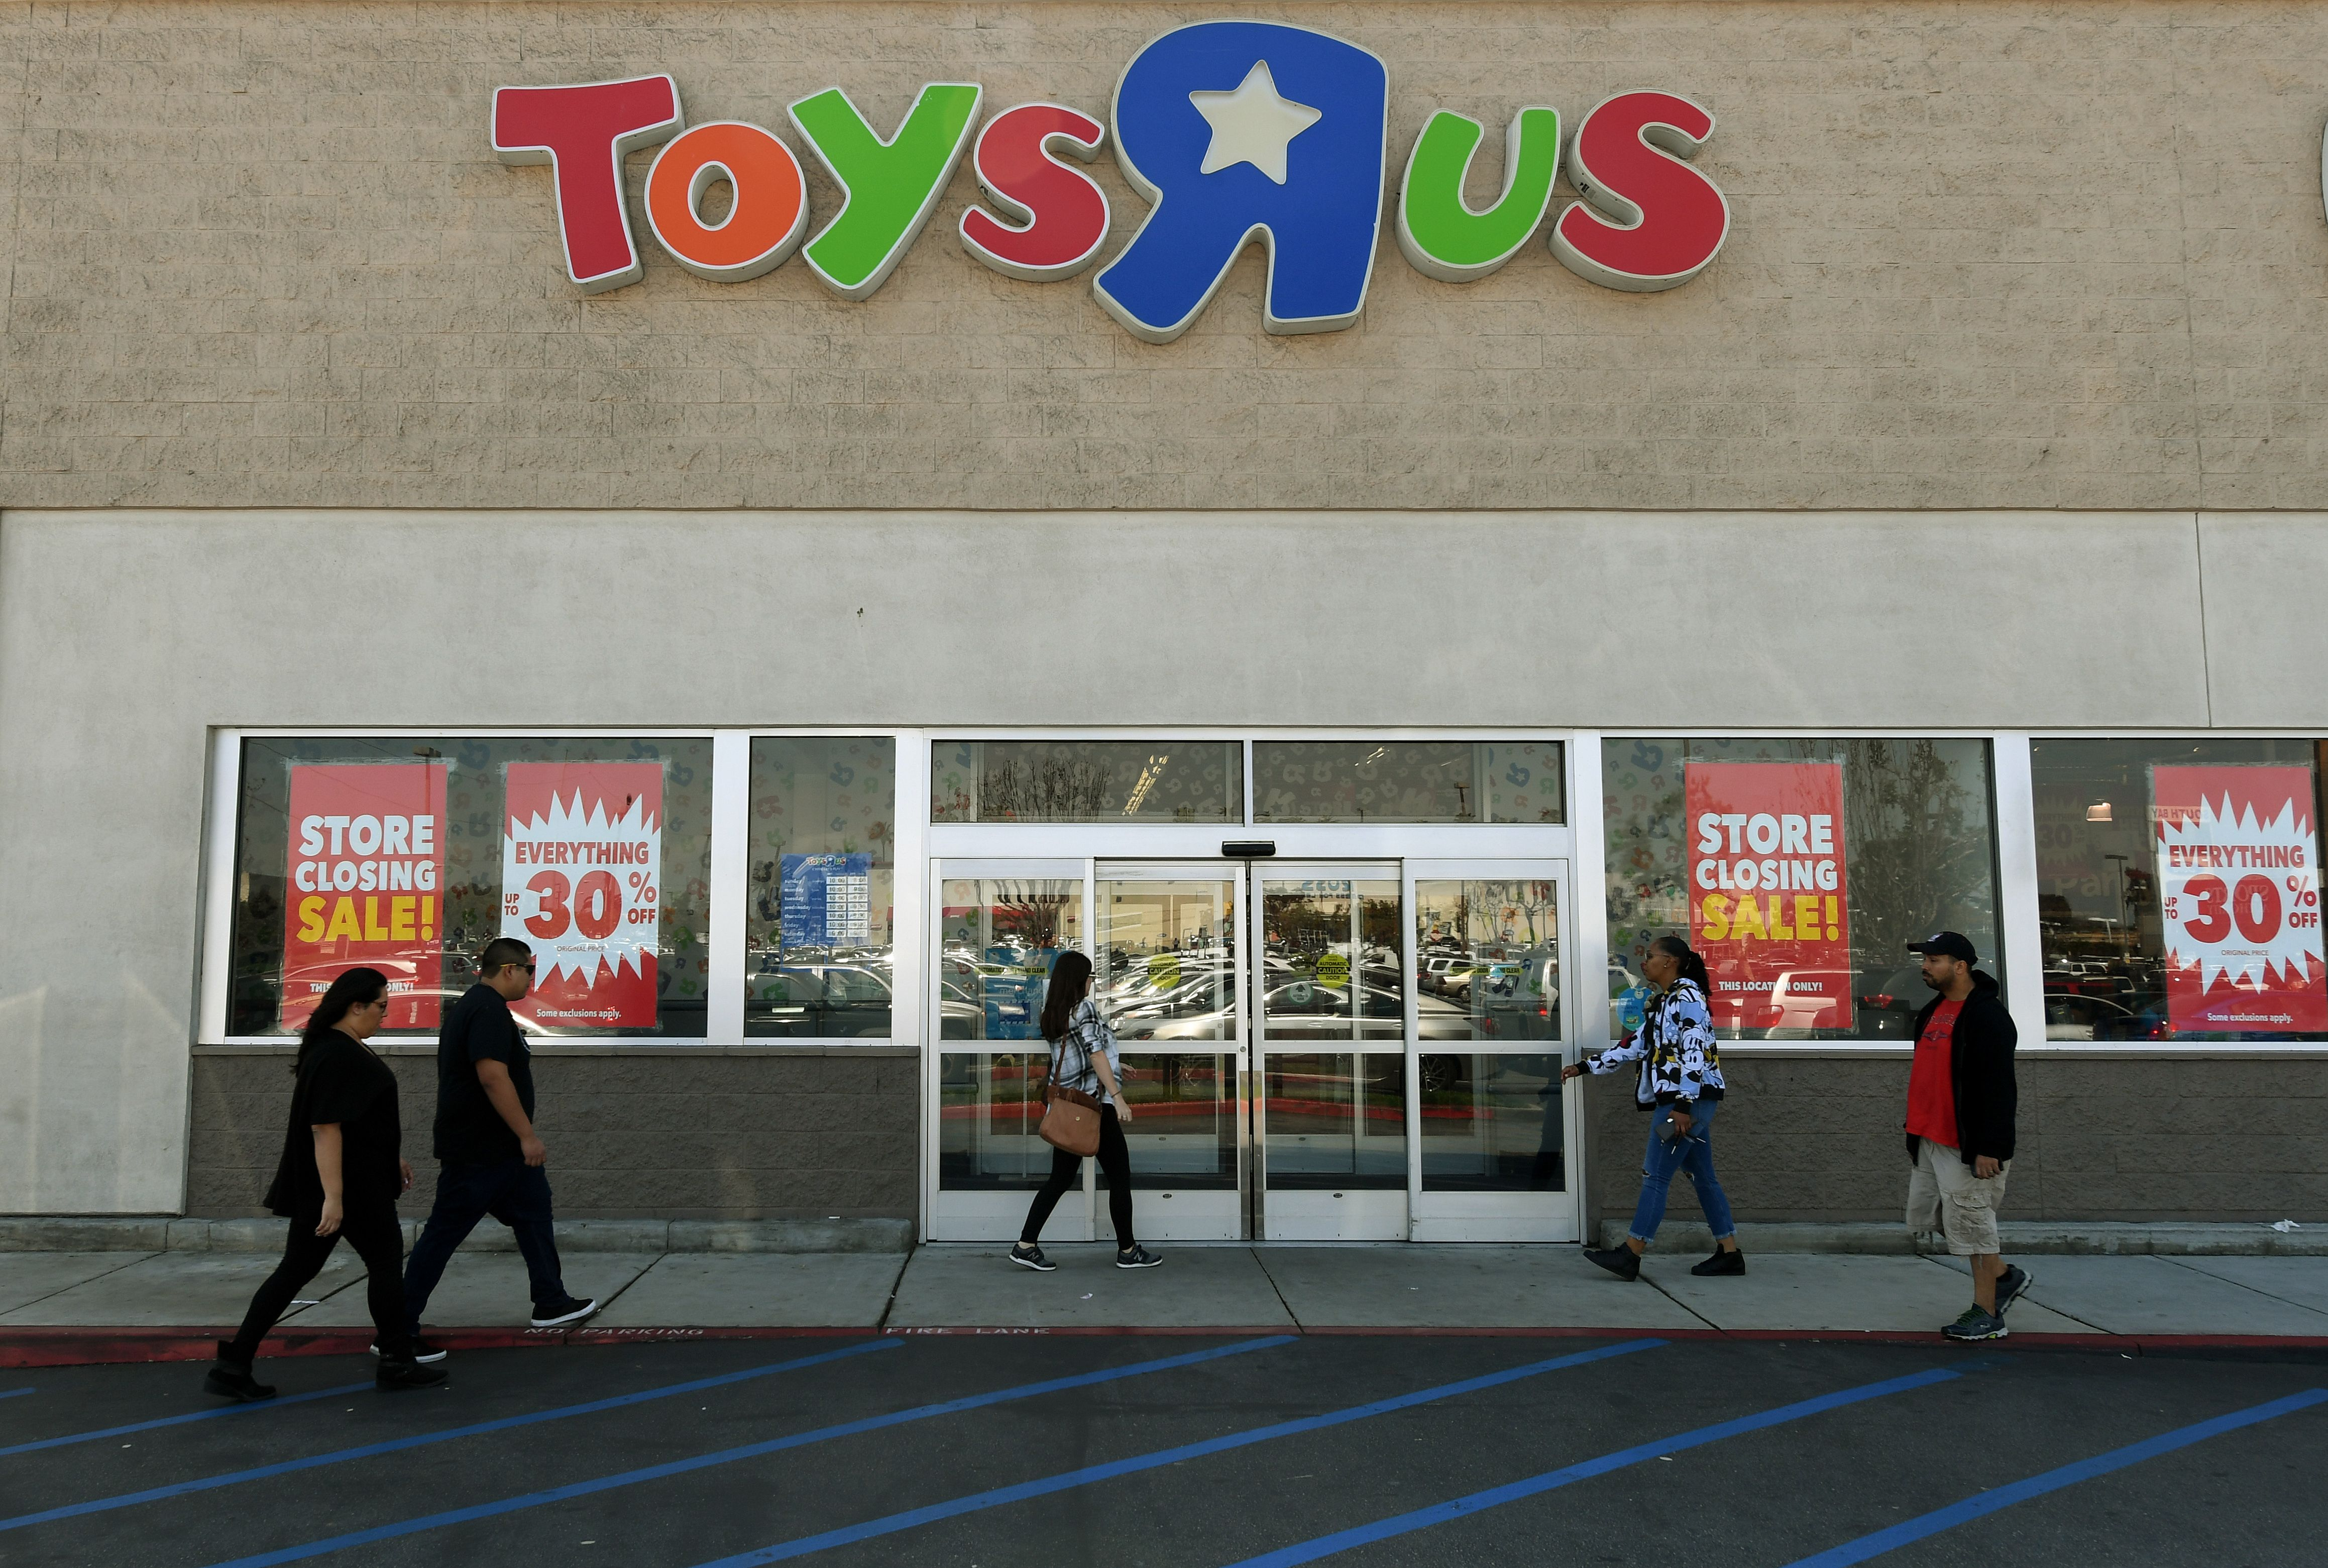 Customers shop at a Toys 'R' Us store, the iconic retail chain after it announced plans to shut all of its US stores, becoming one of the biggest casualties of the retail shakeout amid the rise of e-commerce, in Los Angeles, California on March 23, 2018.                 The debt-plagued company announced that it has filed a motion for bankruptcy court approval to liquidate its US operations, a move that could hit 33,000 jobs. / AFP PHOTO / Mark Ralston        (Photo credit should read MARK RALSTON/AFP/Getty Images)